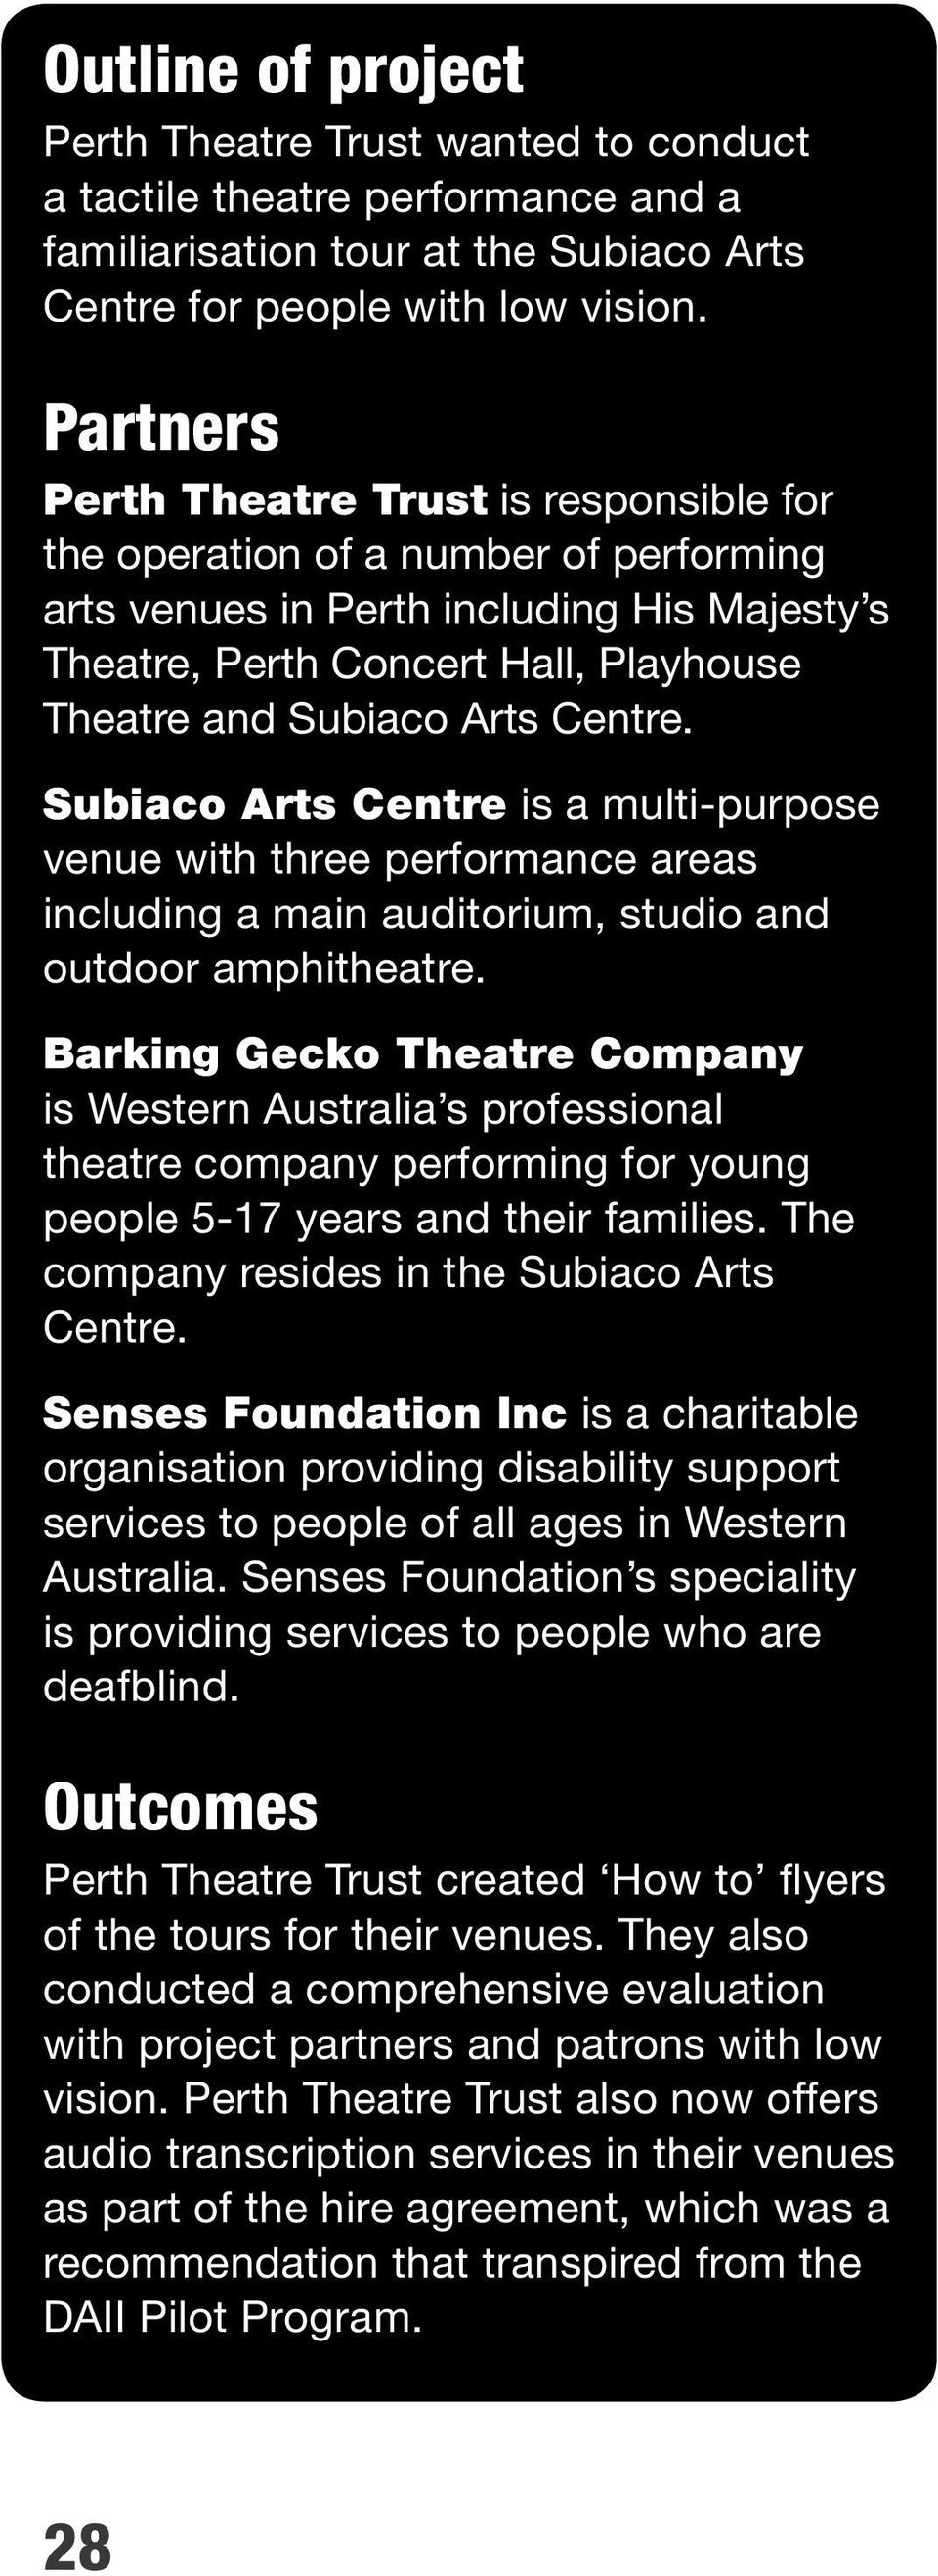 Centre. Subiaco Arts Centre is a multi-purpose venue with three performance areas including a main auditorium, studio and outdoor amphitheatre.